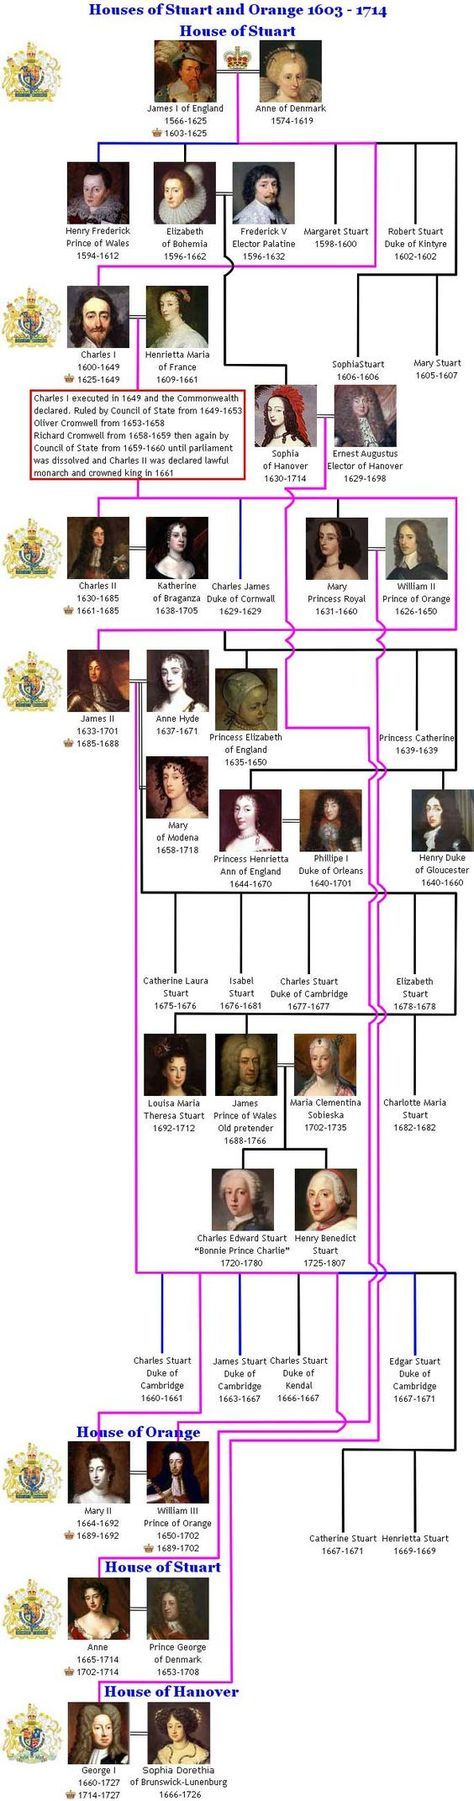 The Royal House of Stuart created the Union of the Crowns in 1603 but would later witness a bloody civil war which changed the face of the monarchy forever